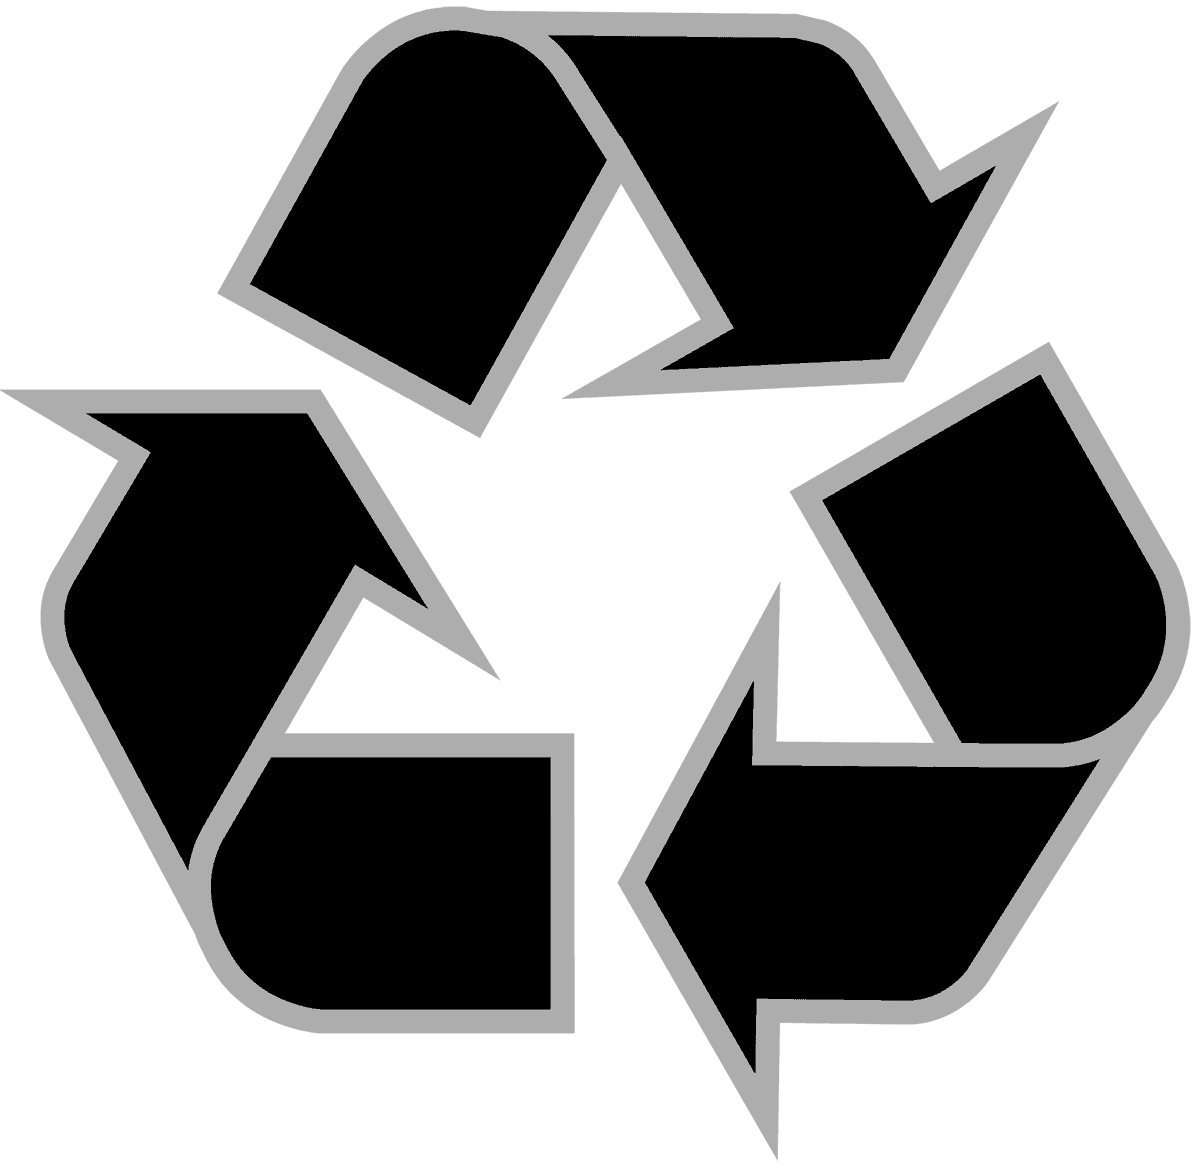 photo regarding Recycle Sign Printable titled Recycling Emblem - Obtain the First Recycle Symbol